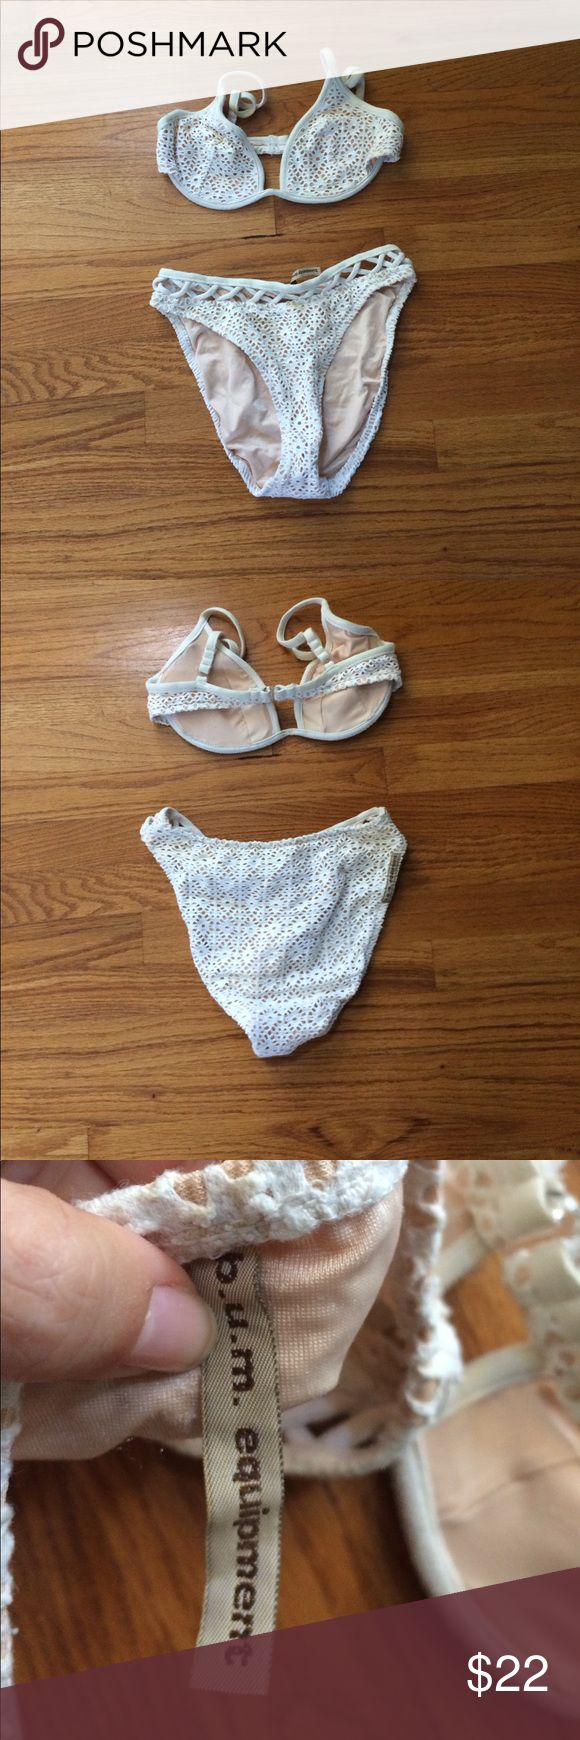 Vintage crochet cream bikini two piece Size small/ medium there's no tag. B/C cup. Lightly padded. Hard underwire. High cut bottom. Excellent vintage condition. Feel free to offer Vintage Swim Bikinis